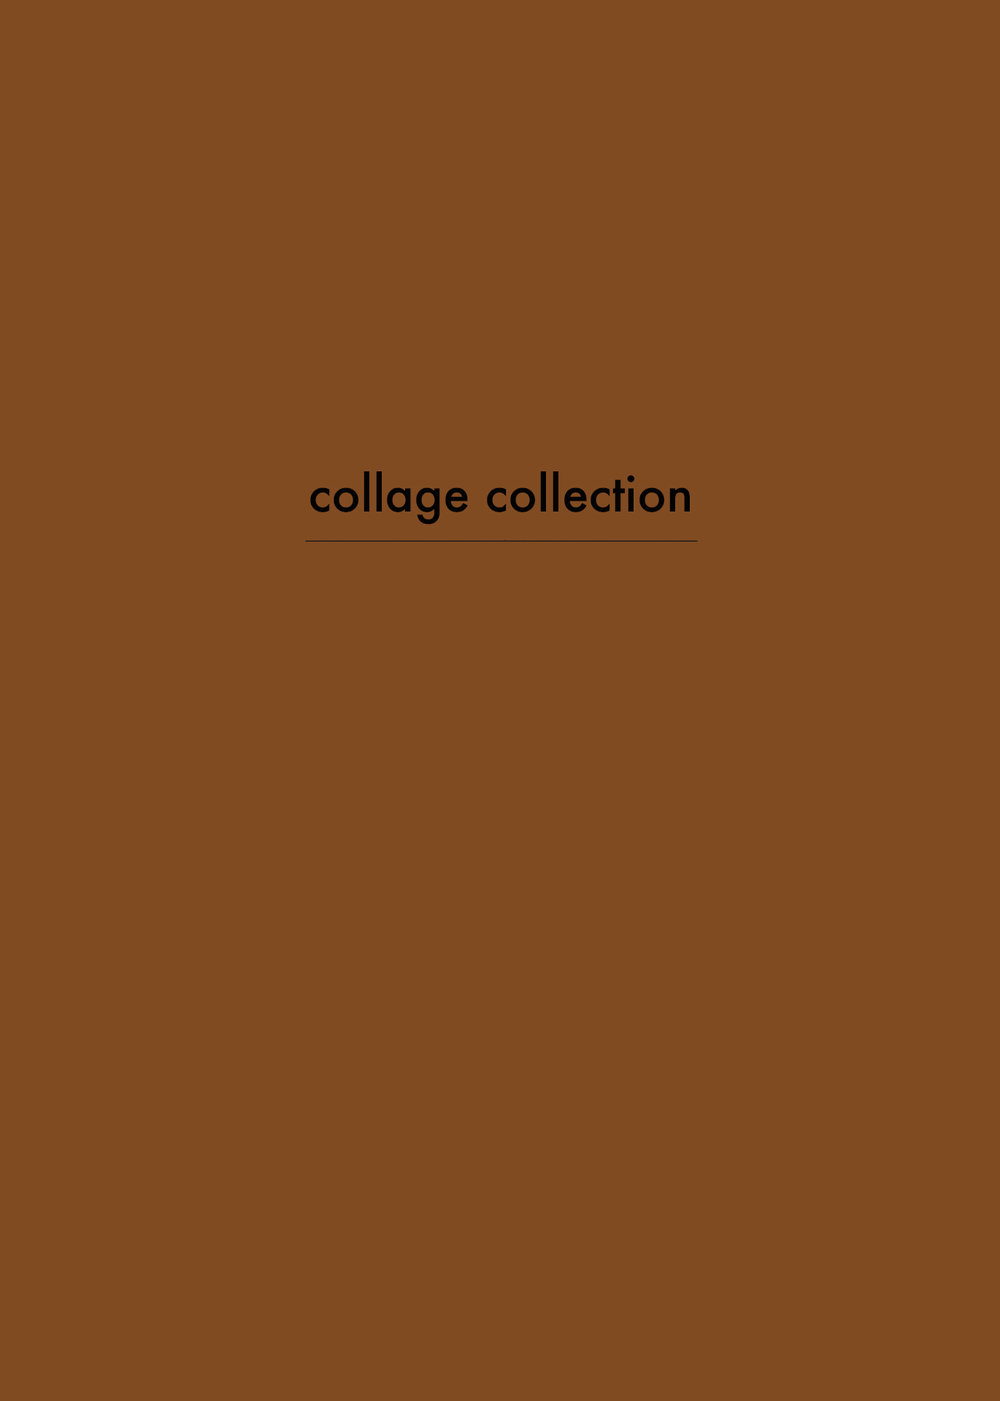 collage collection.jpg